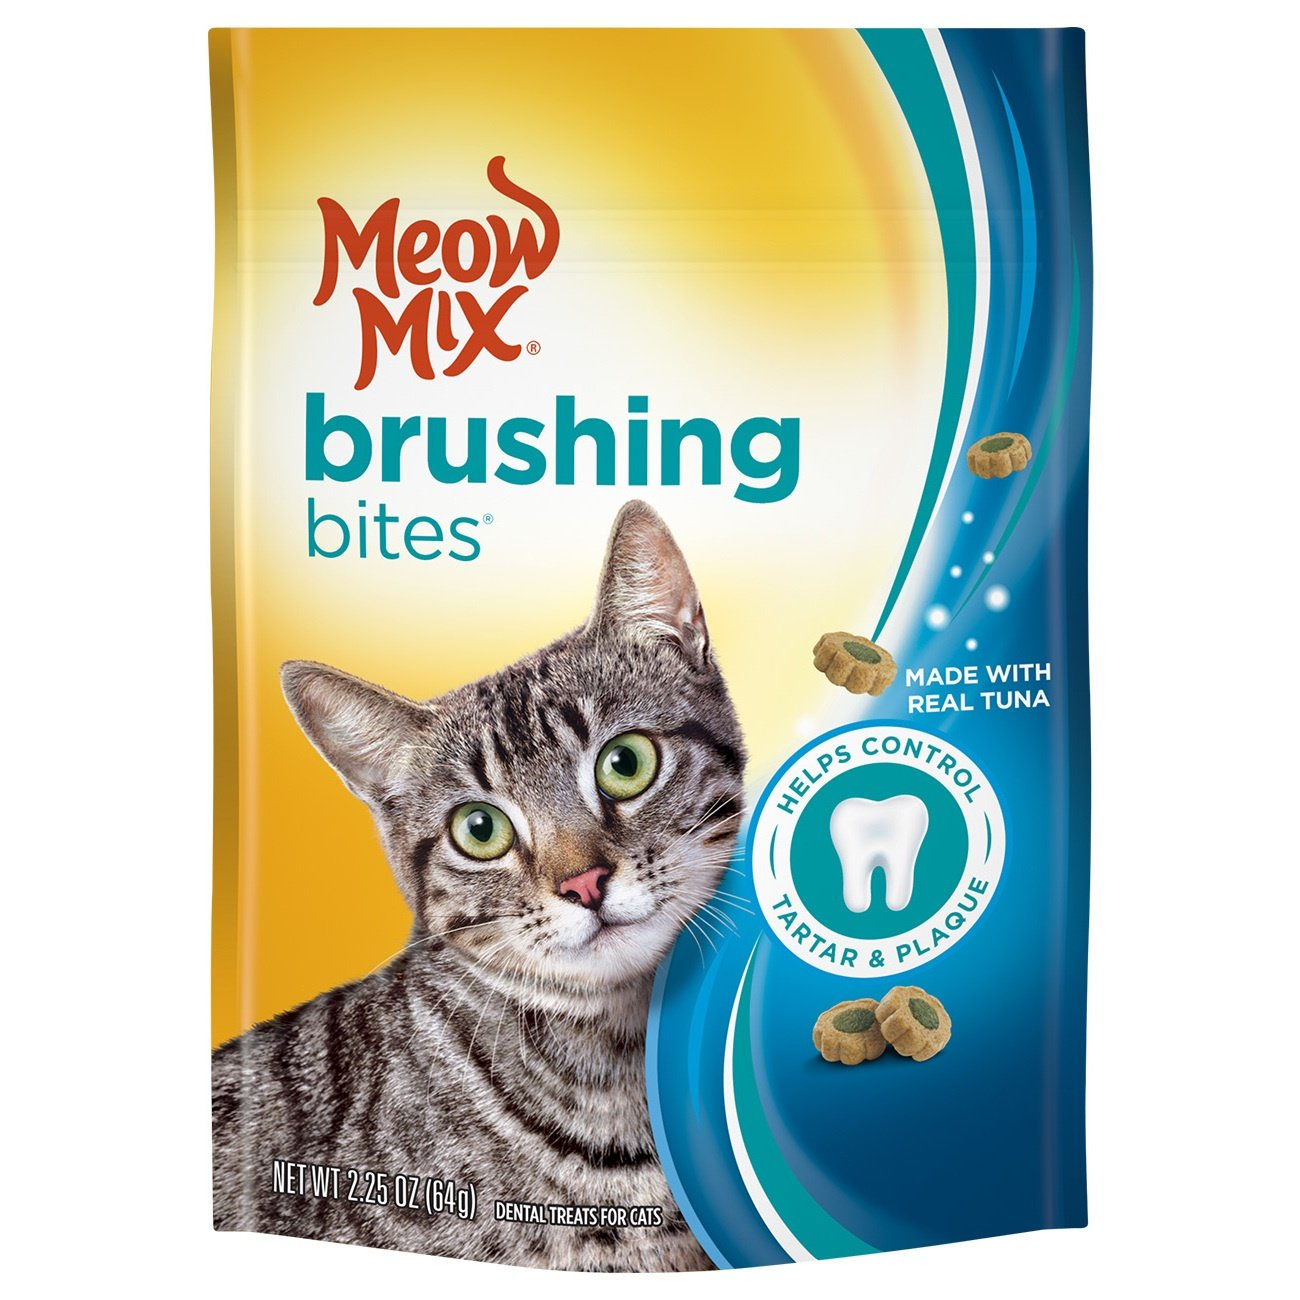 Meow Mix Brushing Bites Cat Dental Treats Made with Real Tuna, 2.25 oz (Pack of 5)